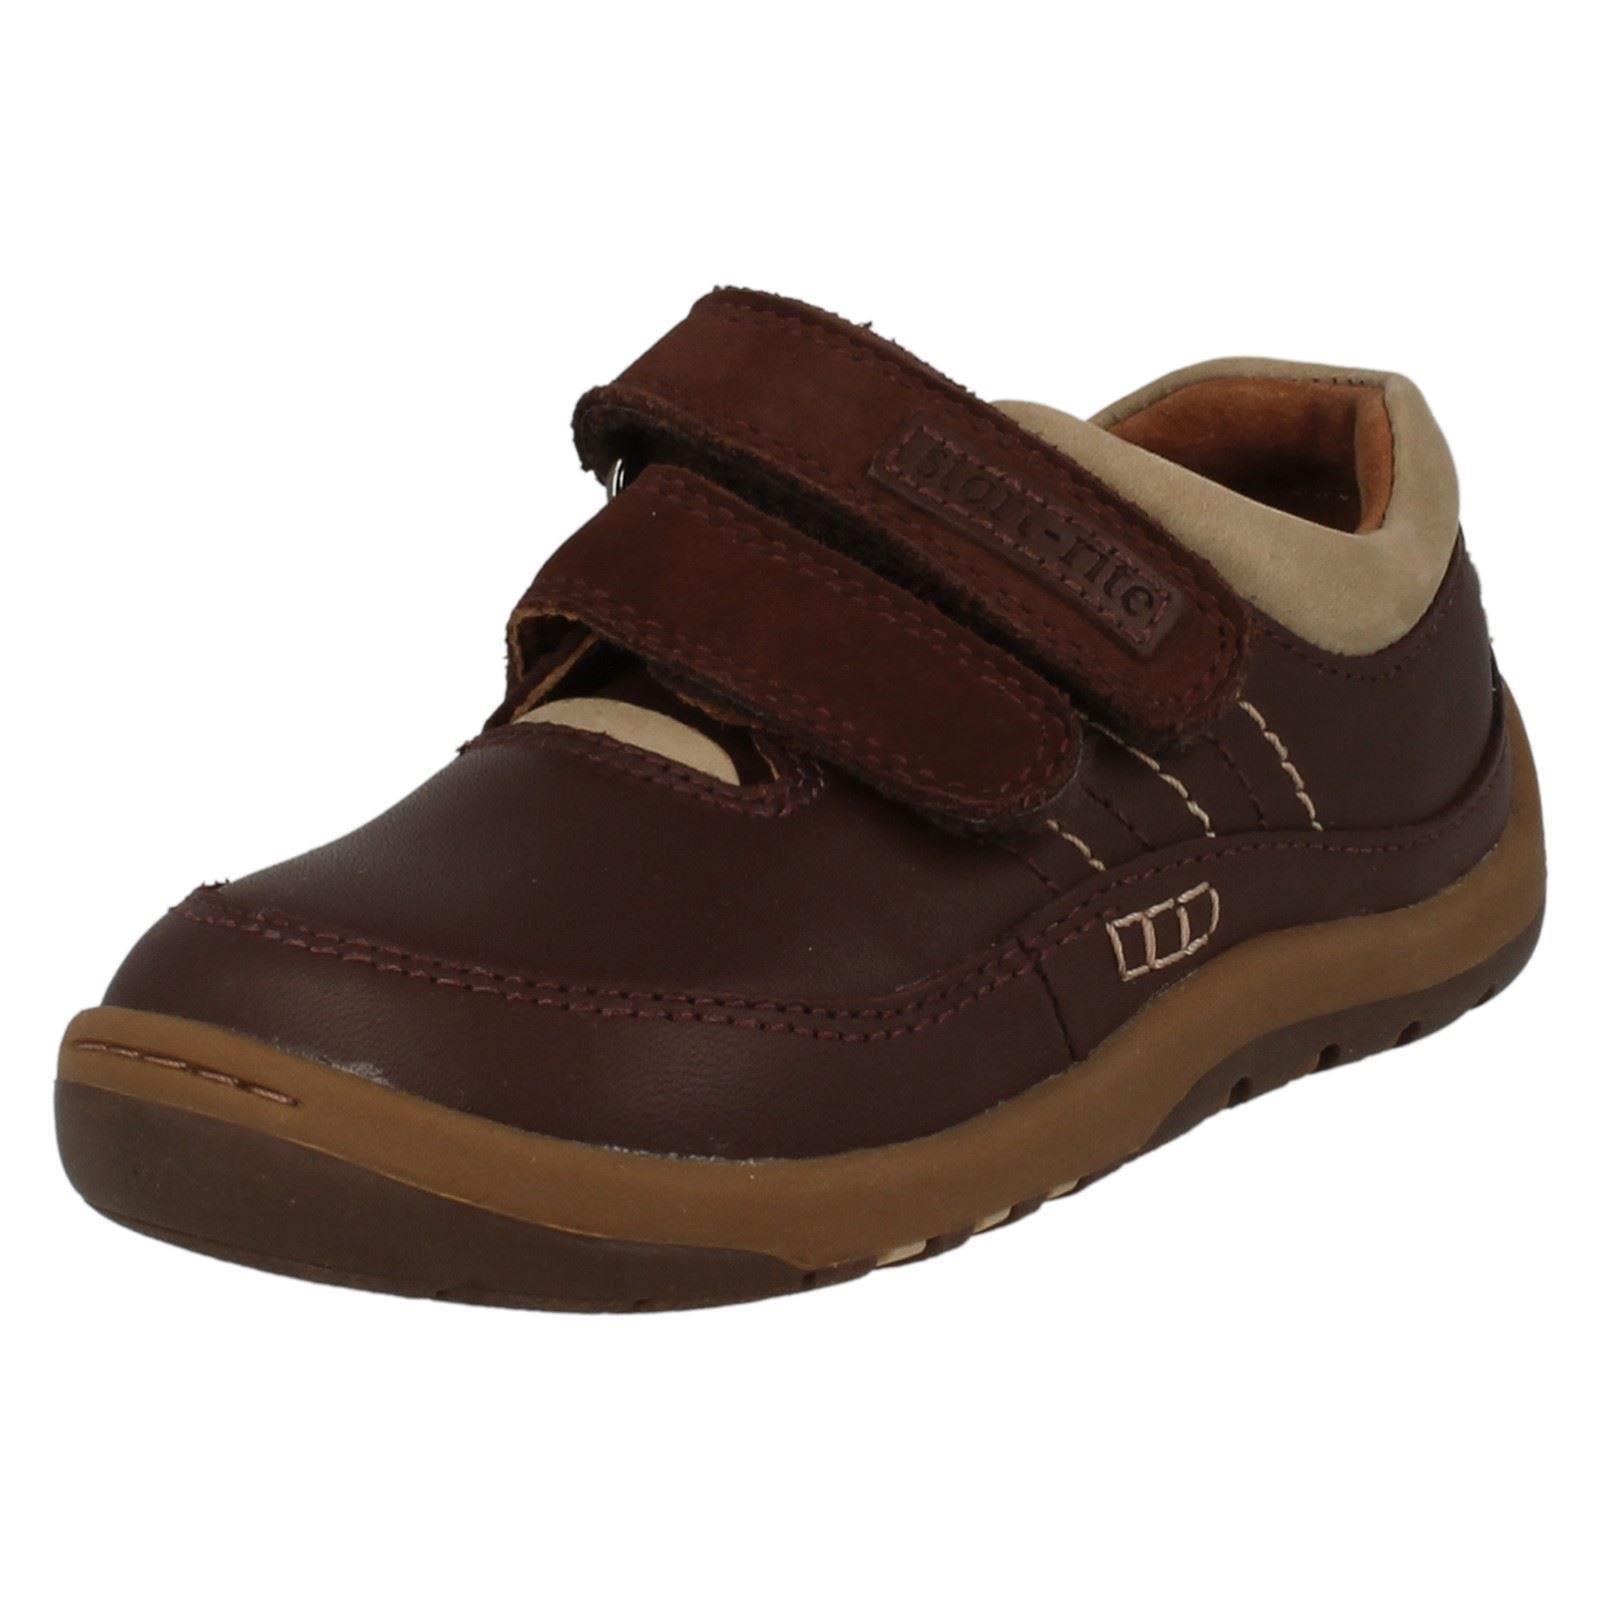 Discover great deals on Baby Walking Shoes for Boys, Baby Walking Shoes for Girls, and more at Macys. Macy's Presents: The Edit - A curated mix of fashion and inspiration Check It Out Free Shipping with $75 purchase + Free Store Pickup.